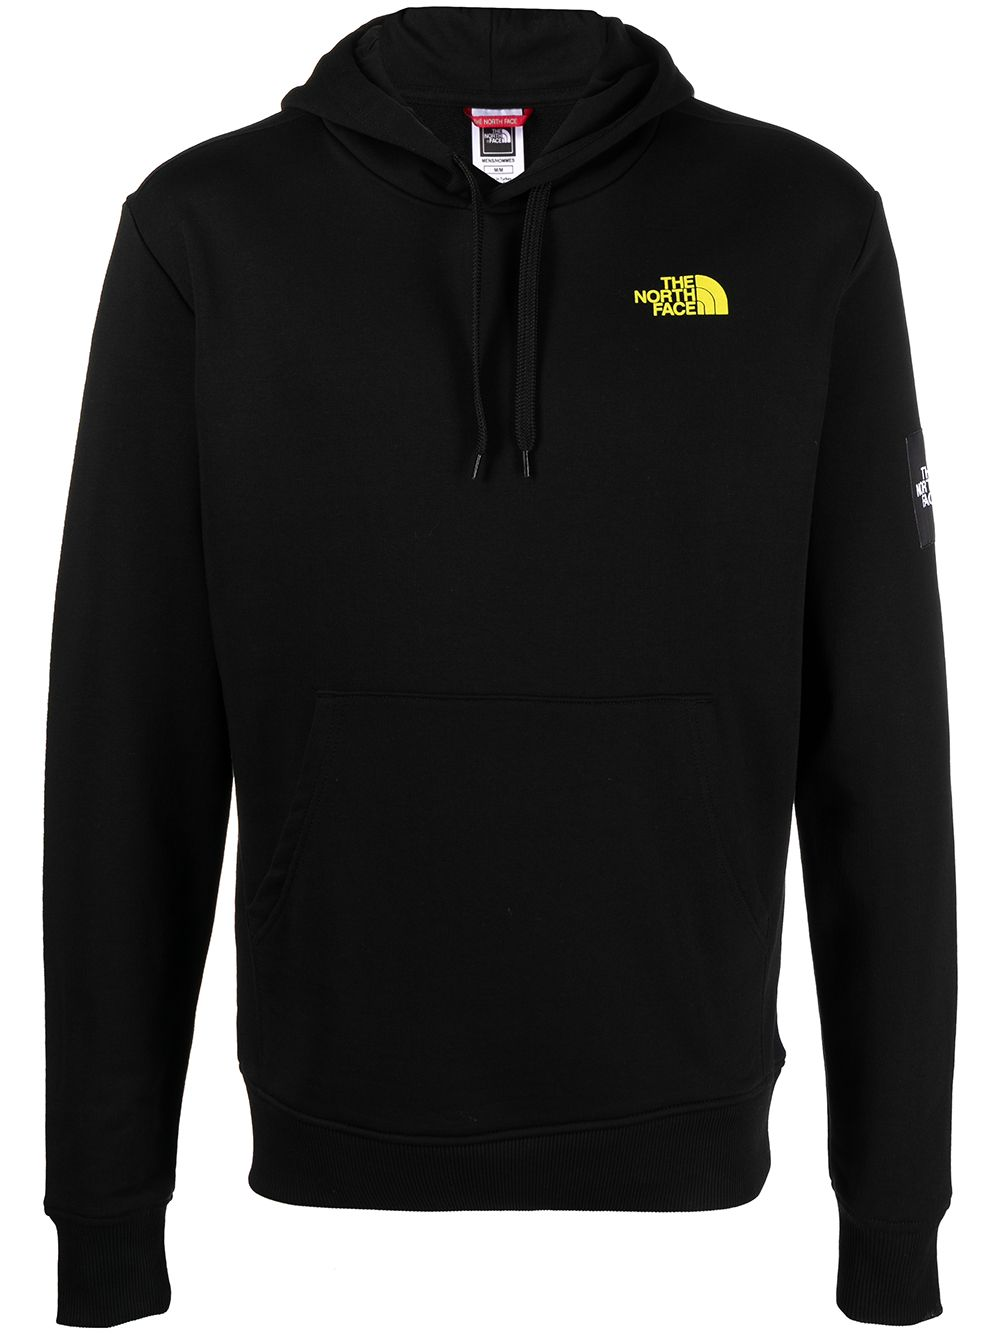 The North Face felpa con logo uomo THE NORTH FACE | Felpe | NF0A557HJK31